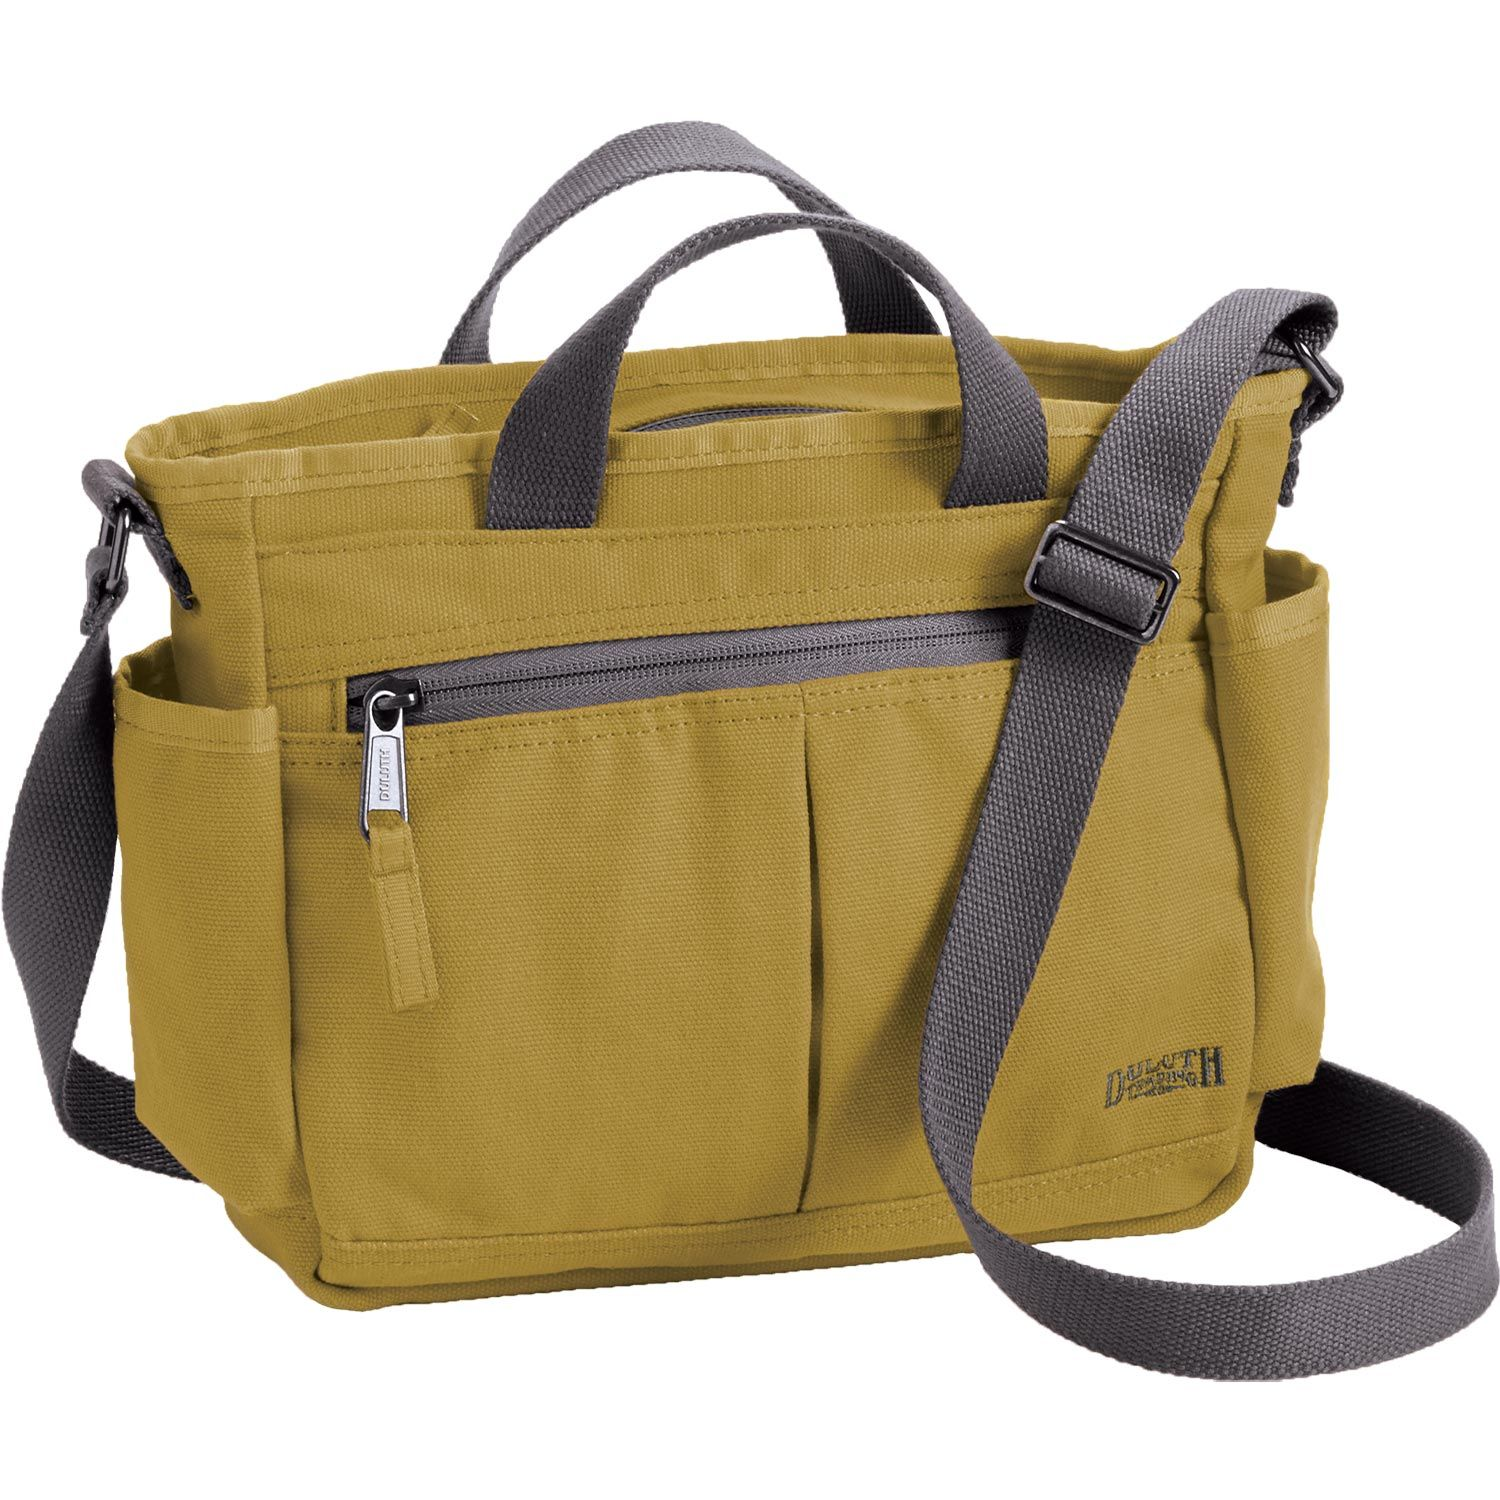 Men Canvas Bags Business Briefcase Office Travel Messenger Large Tote WomenS Computer Bags Beige